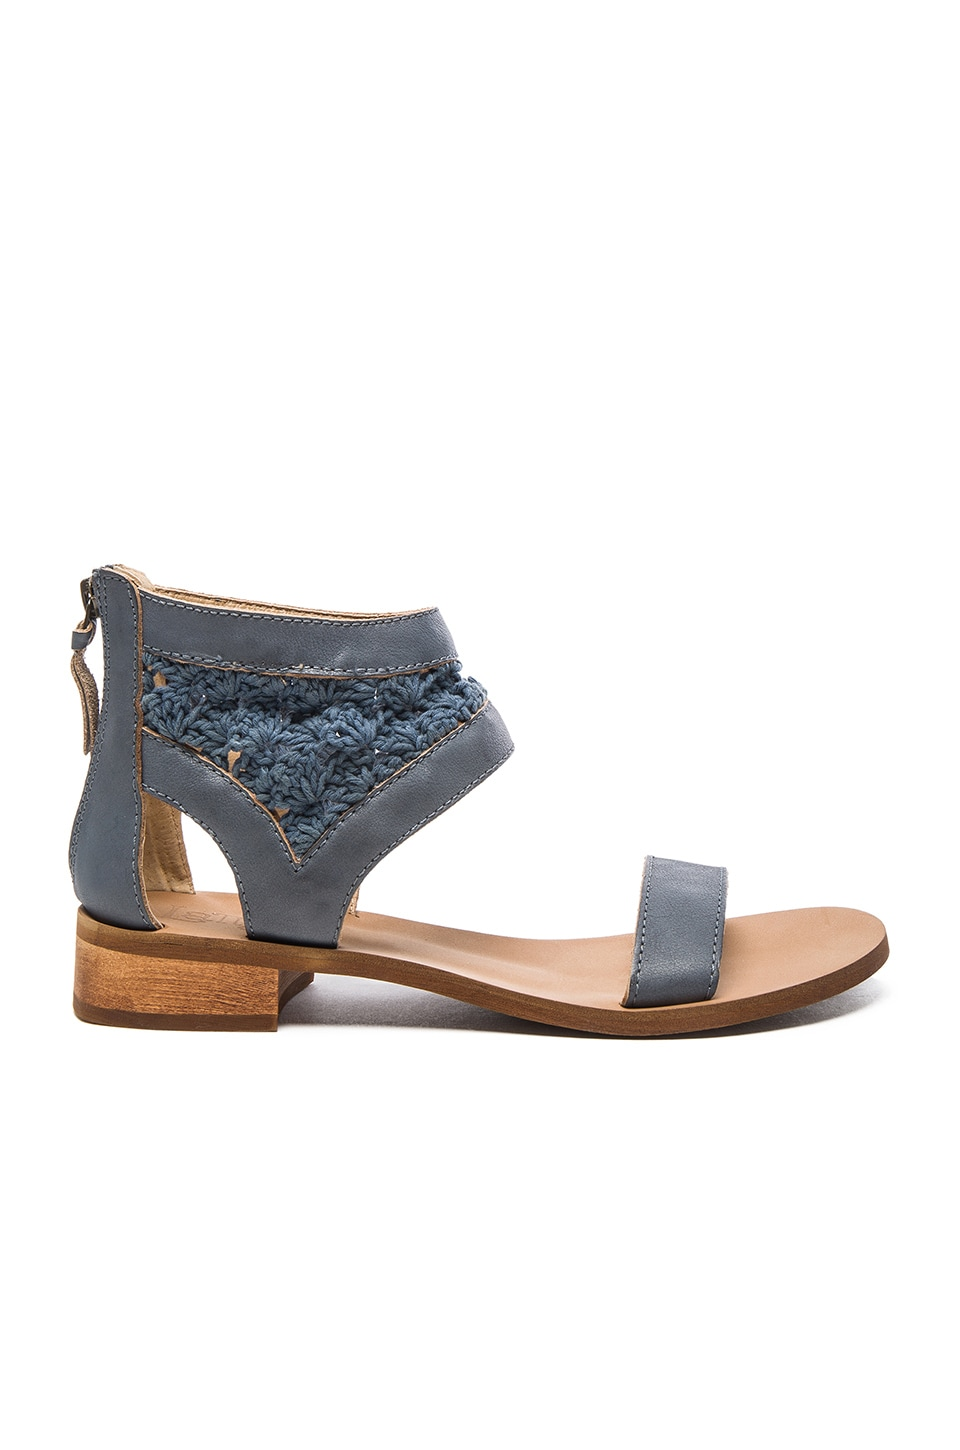 Latigo Rupee Sandal in Denim Blue